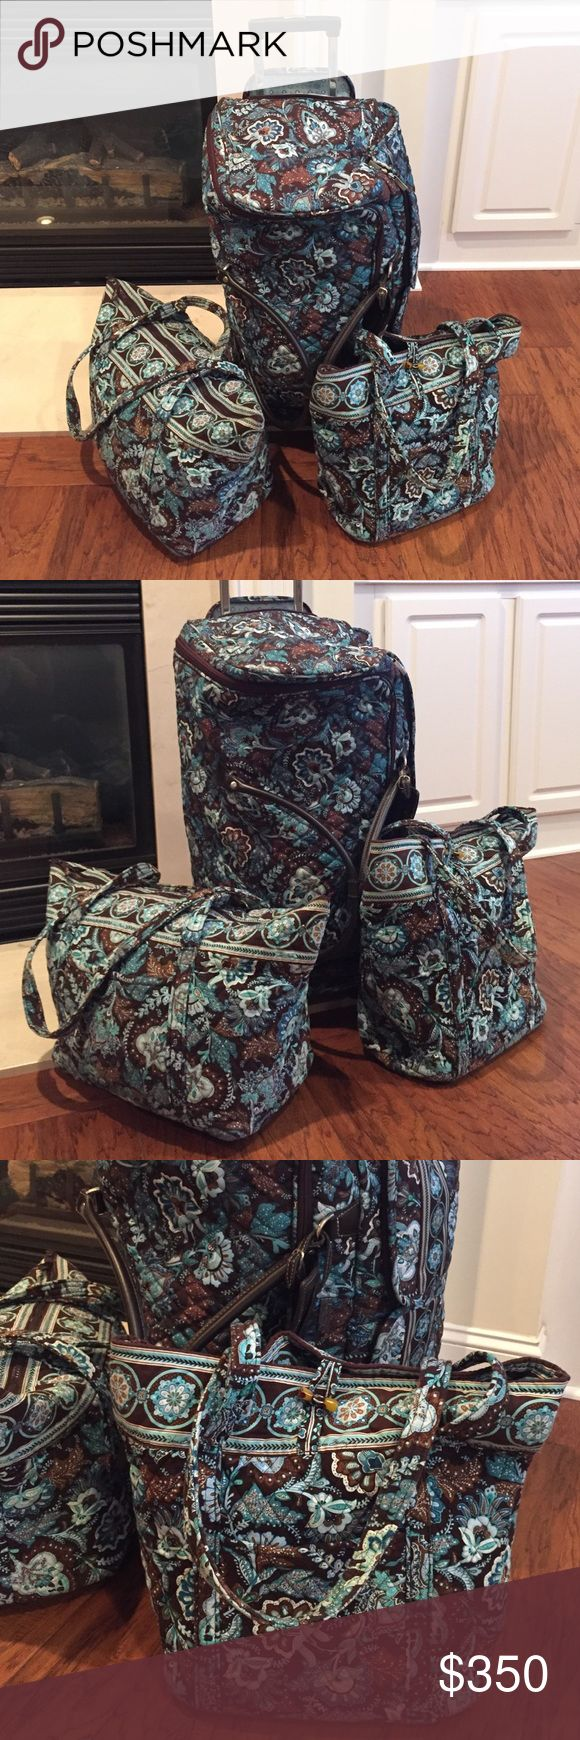 Vera Bradley luggage set Vera Bradley luggage set. Rolling duffle, zip duffle, and tote bag. Tag included, like new. Amazing set for college and high school students! Vera Bradley Bags Travel Bags